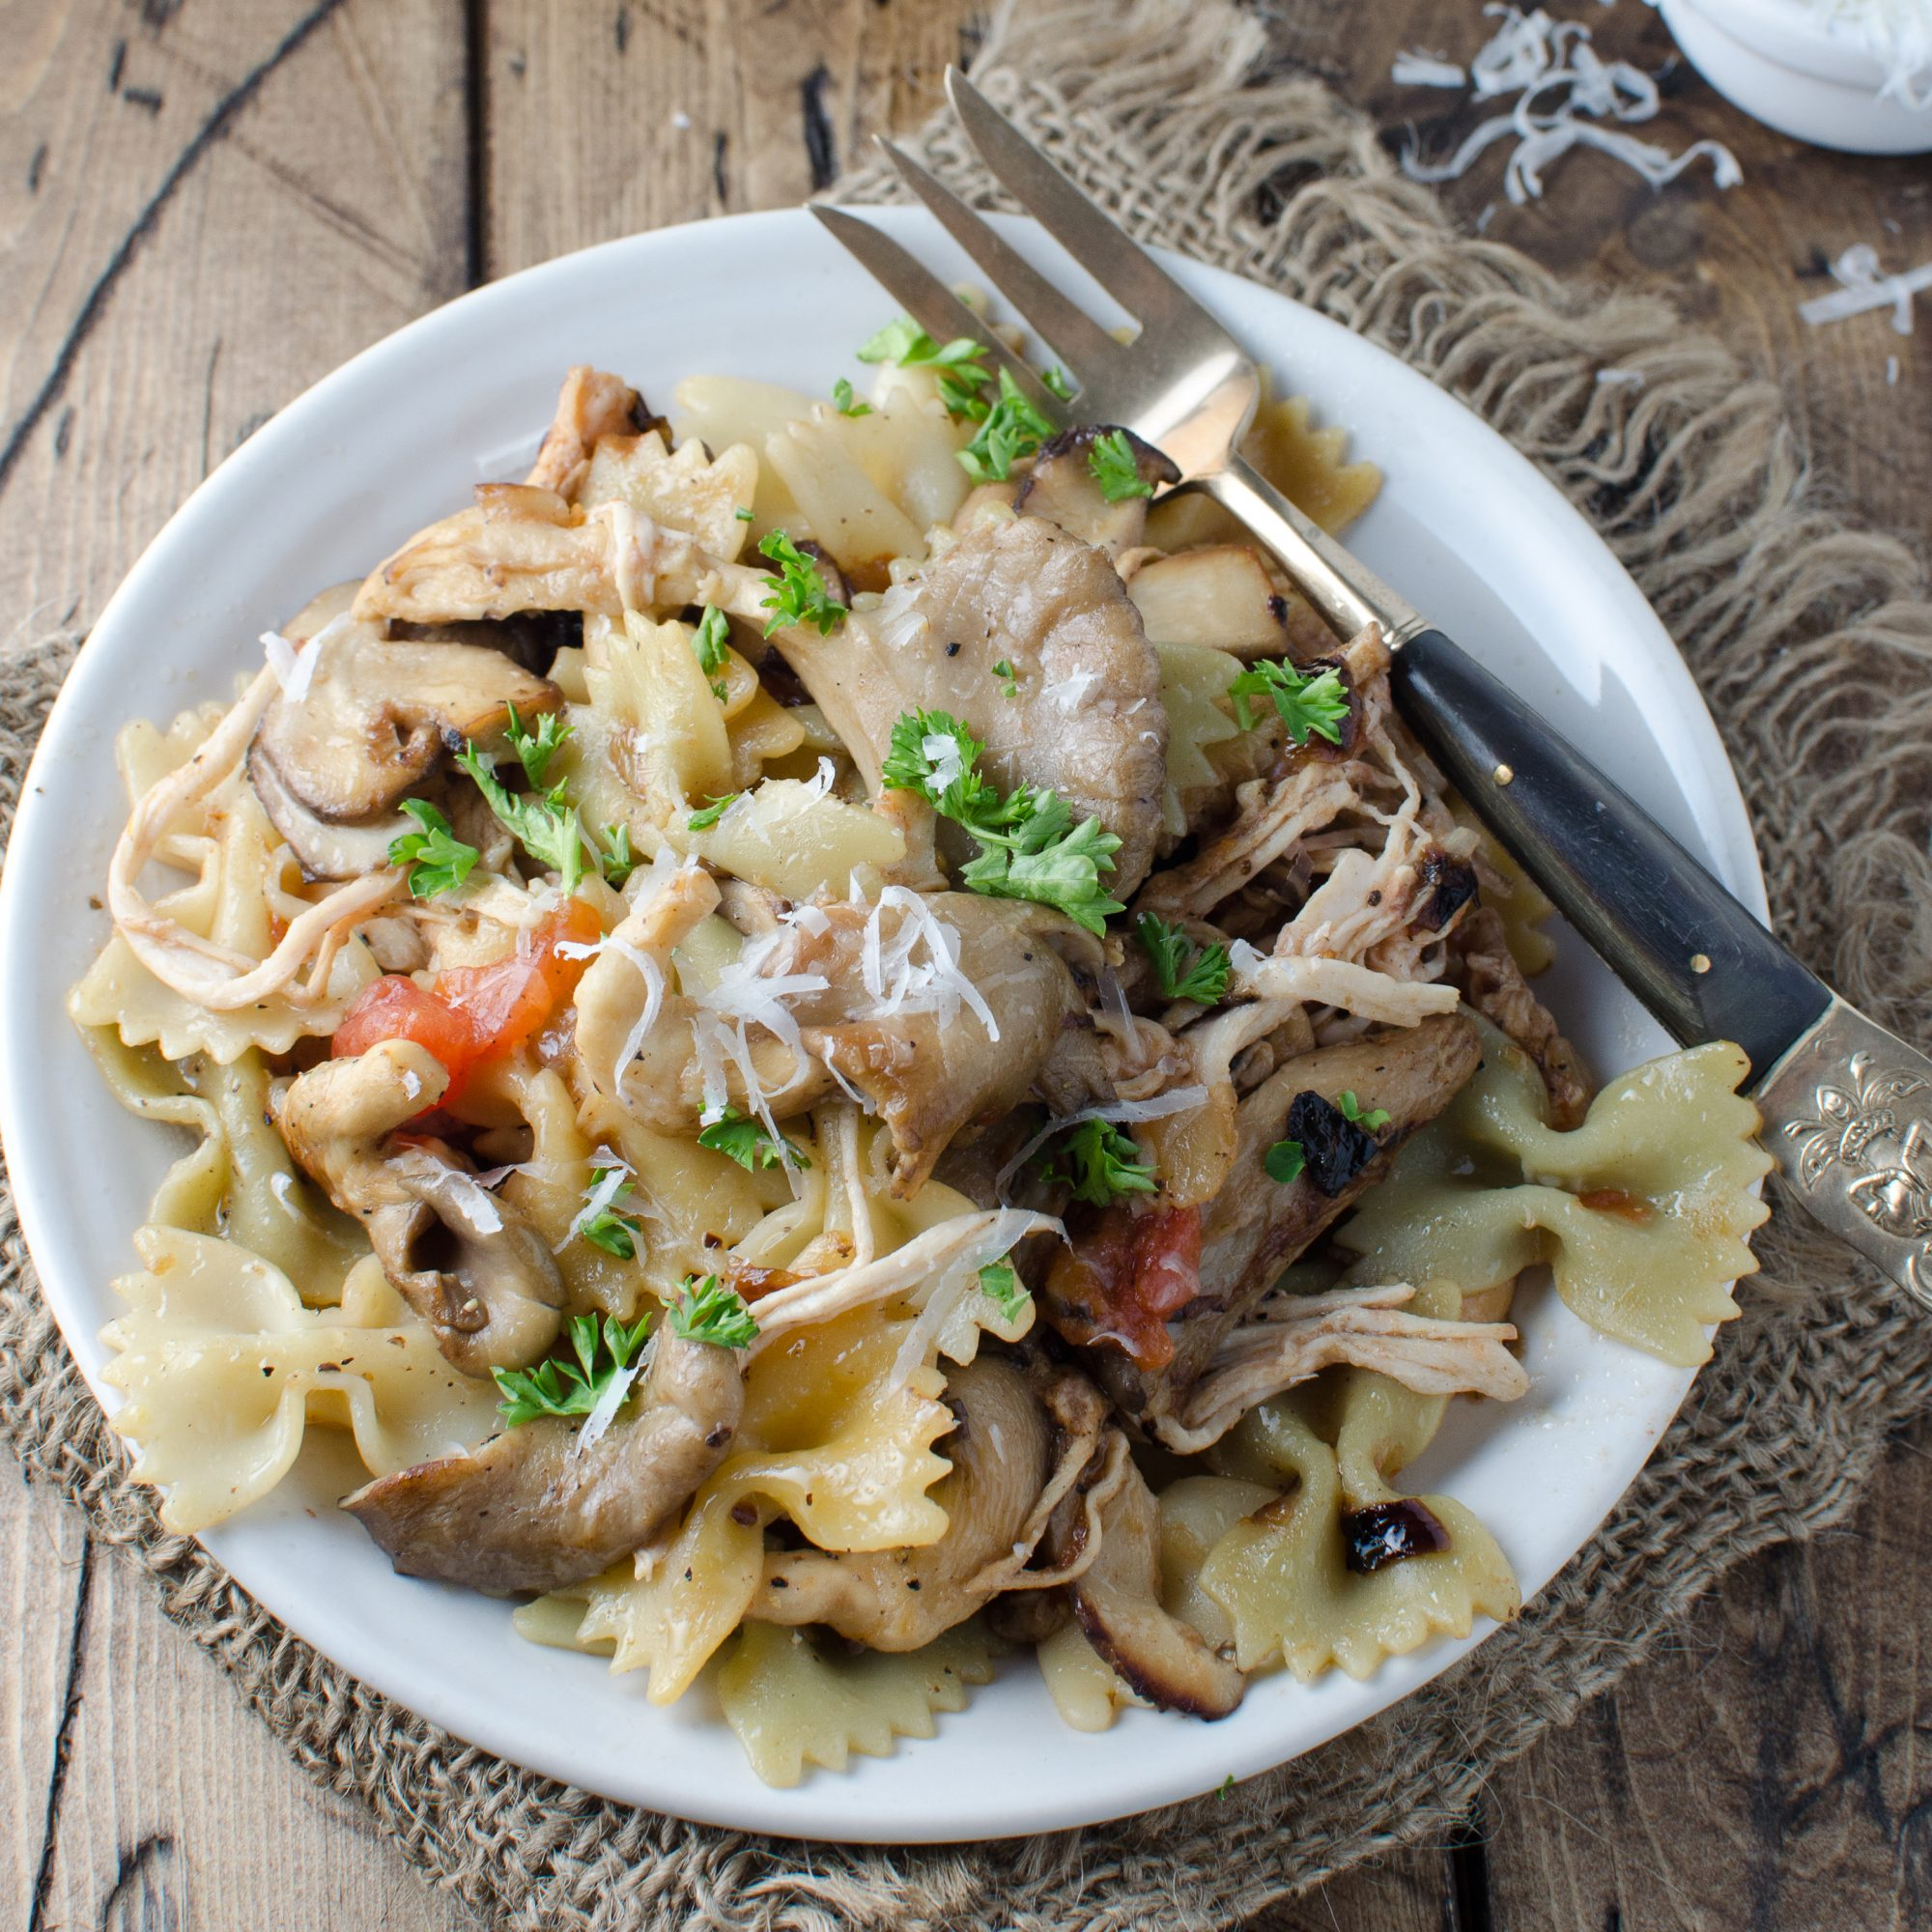 hd-201404-r-pasta-rustica-with-caramelized-onions-chicken-and-wild-mushrooms.jpg